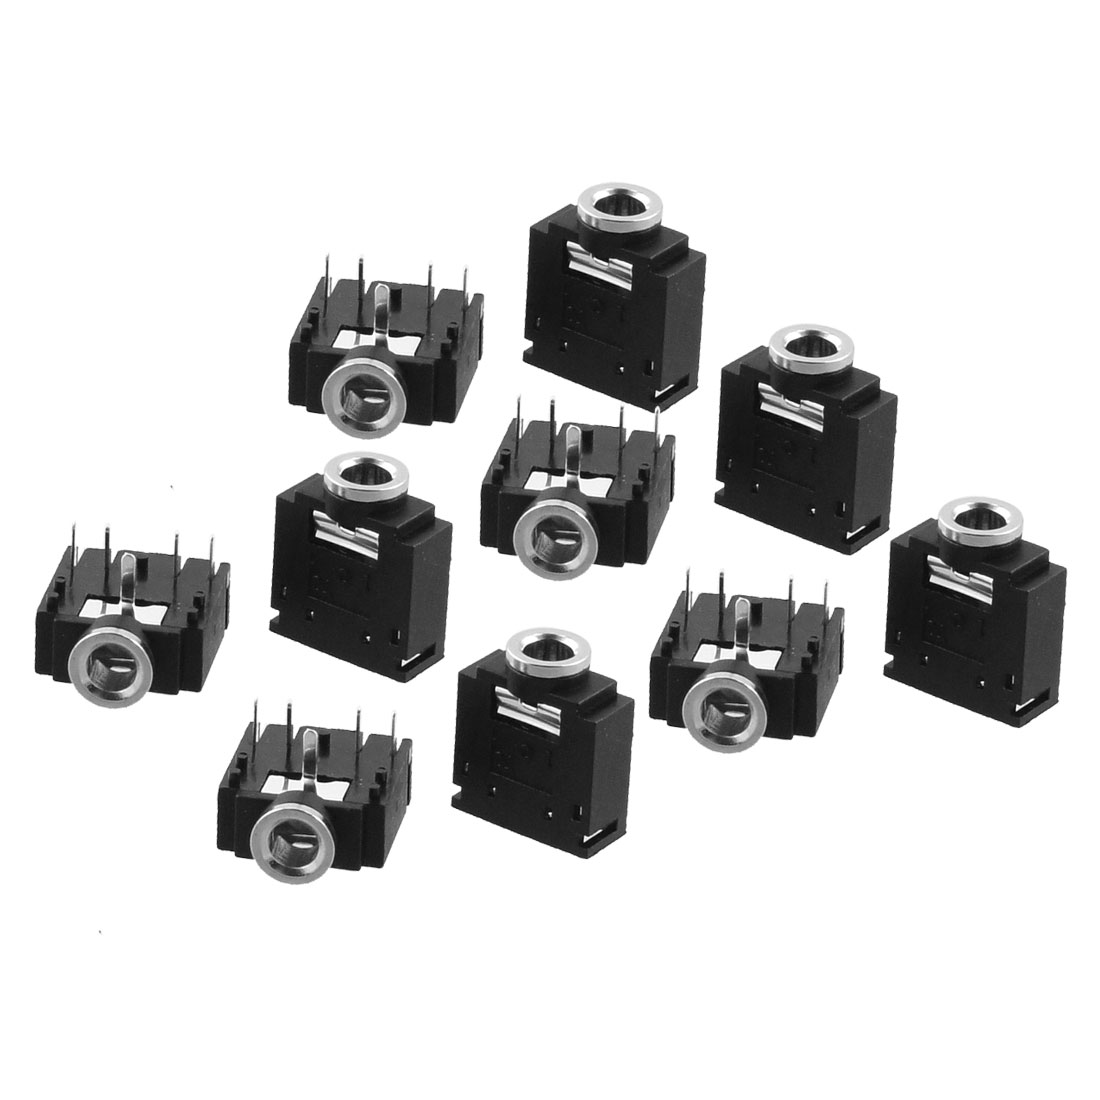 10 x 5pin Right Angle DIP PCB Mount 3.5mm Stereo Jacks Connectors